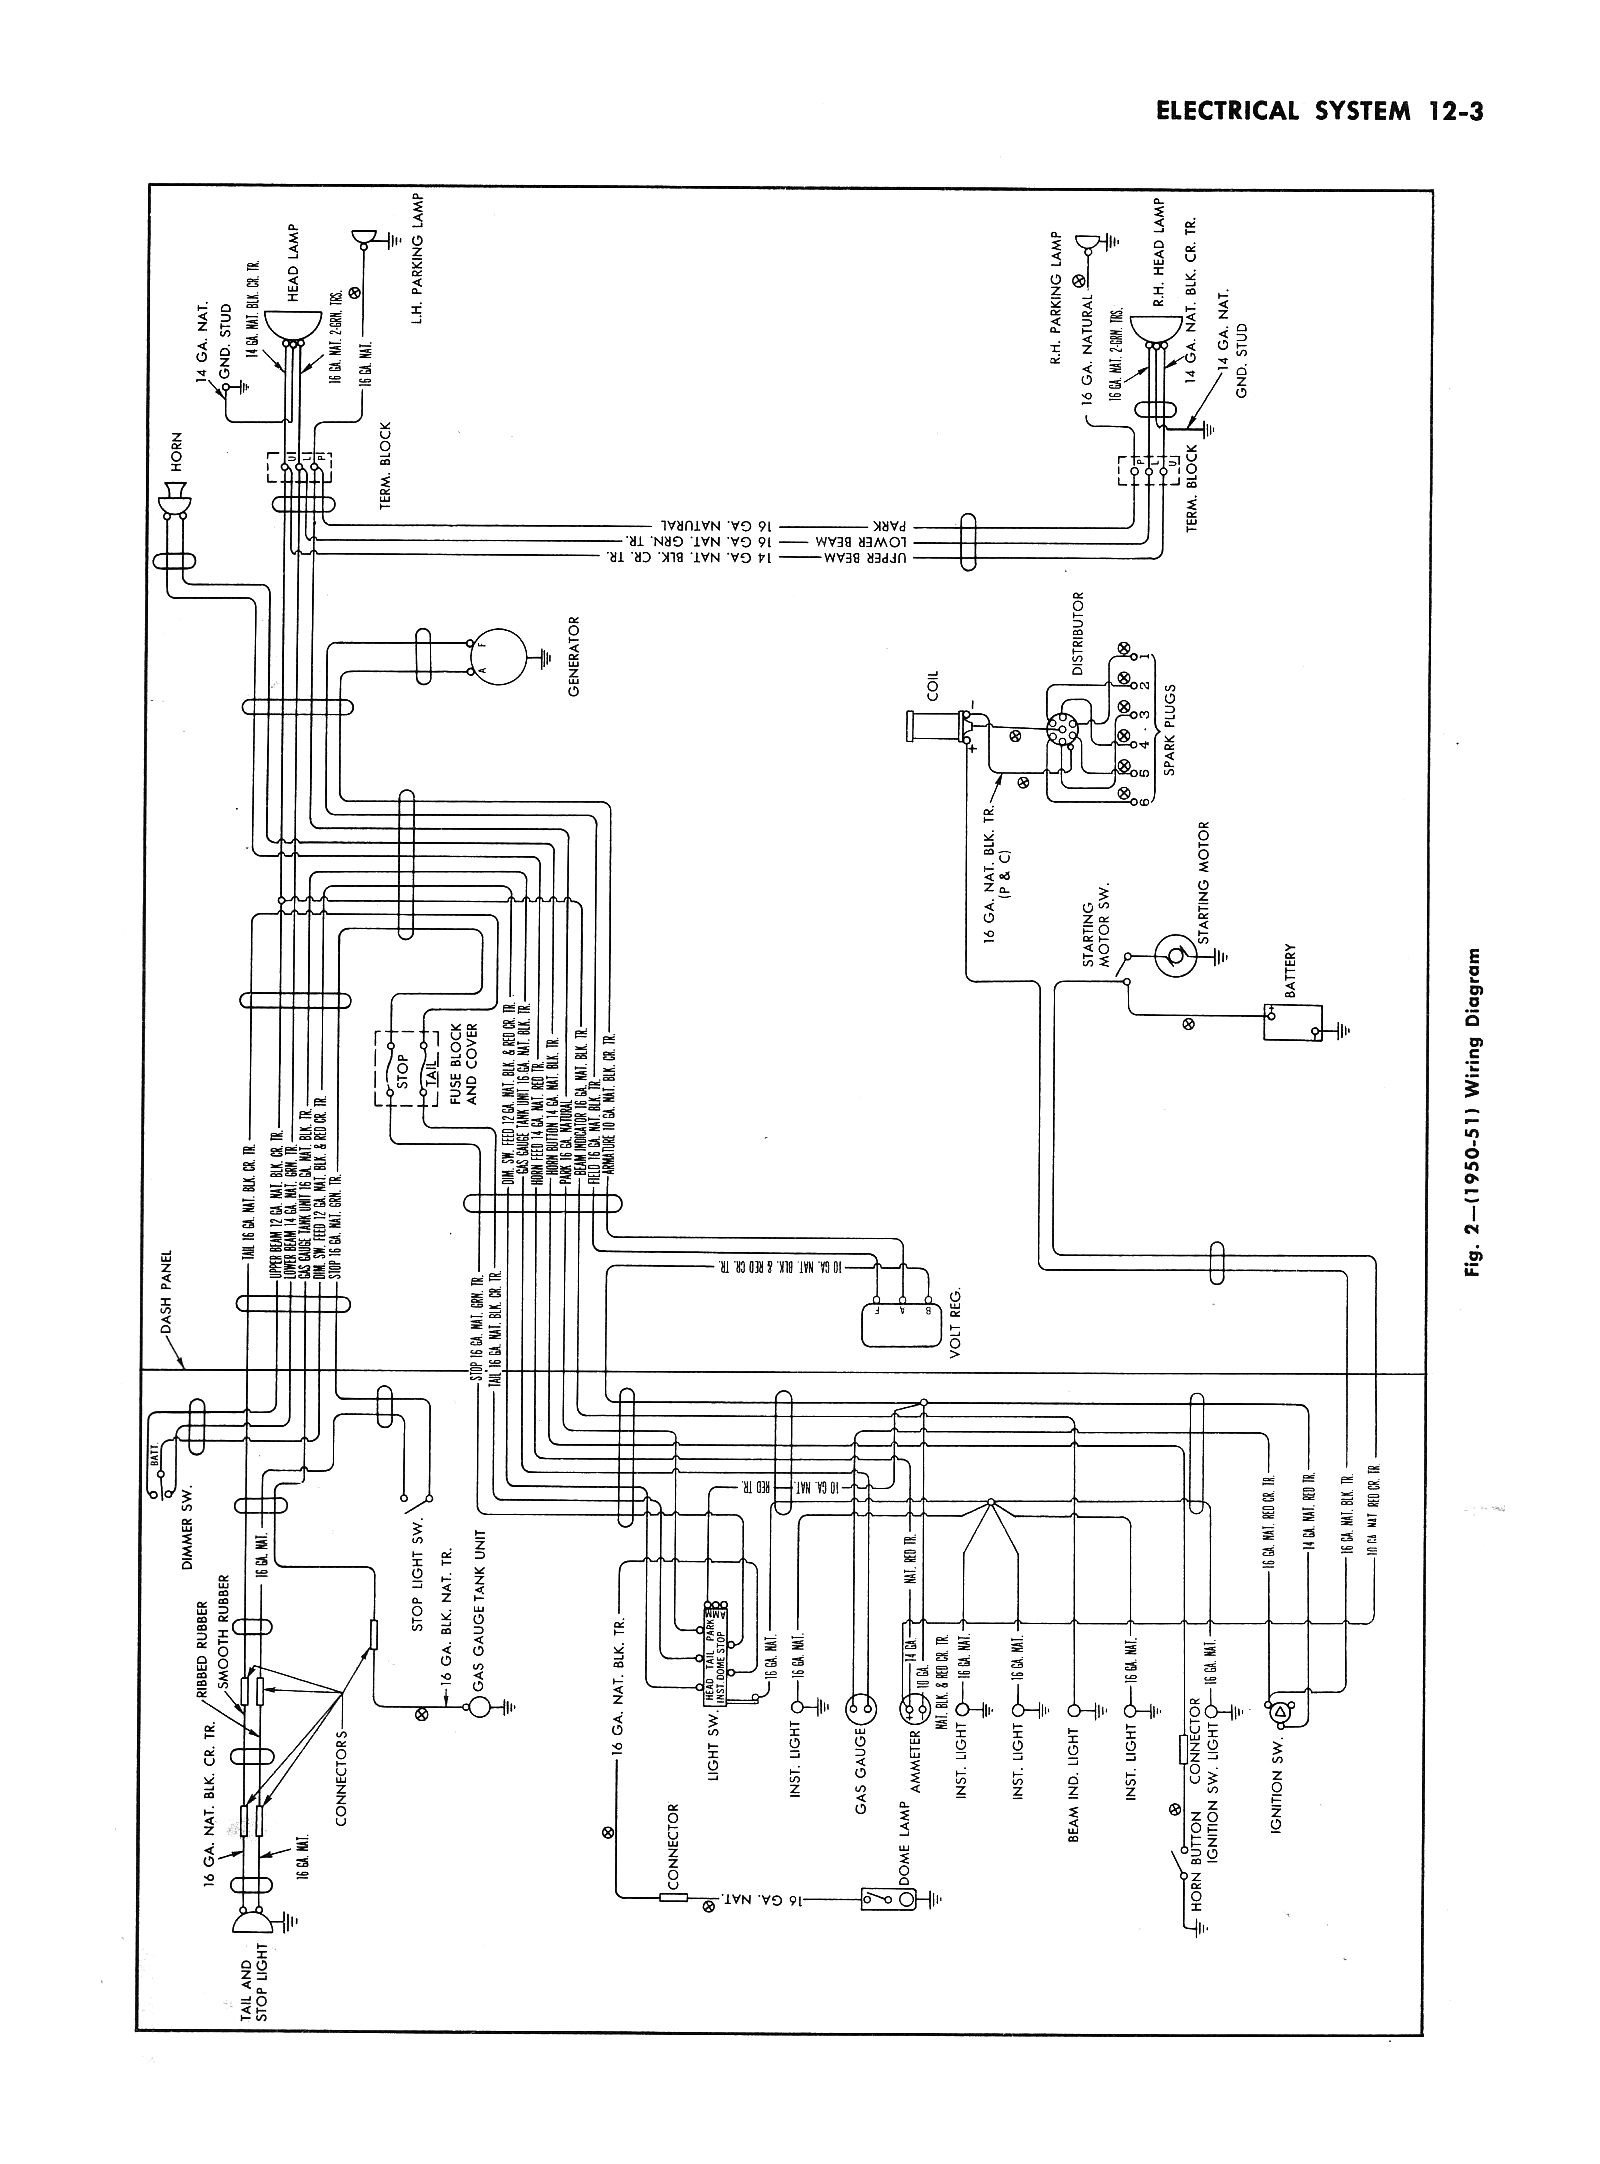 1970 Camaro Wiring Diagram V8 Schematics Diagrams 1981 Dash Instrument Cluster Circuit Board For Models 38 Chevy Horn Relay Find U2022 Rh Empcom Co 1971 Schematic